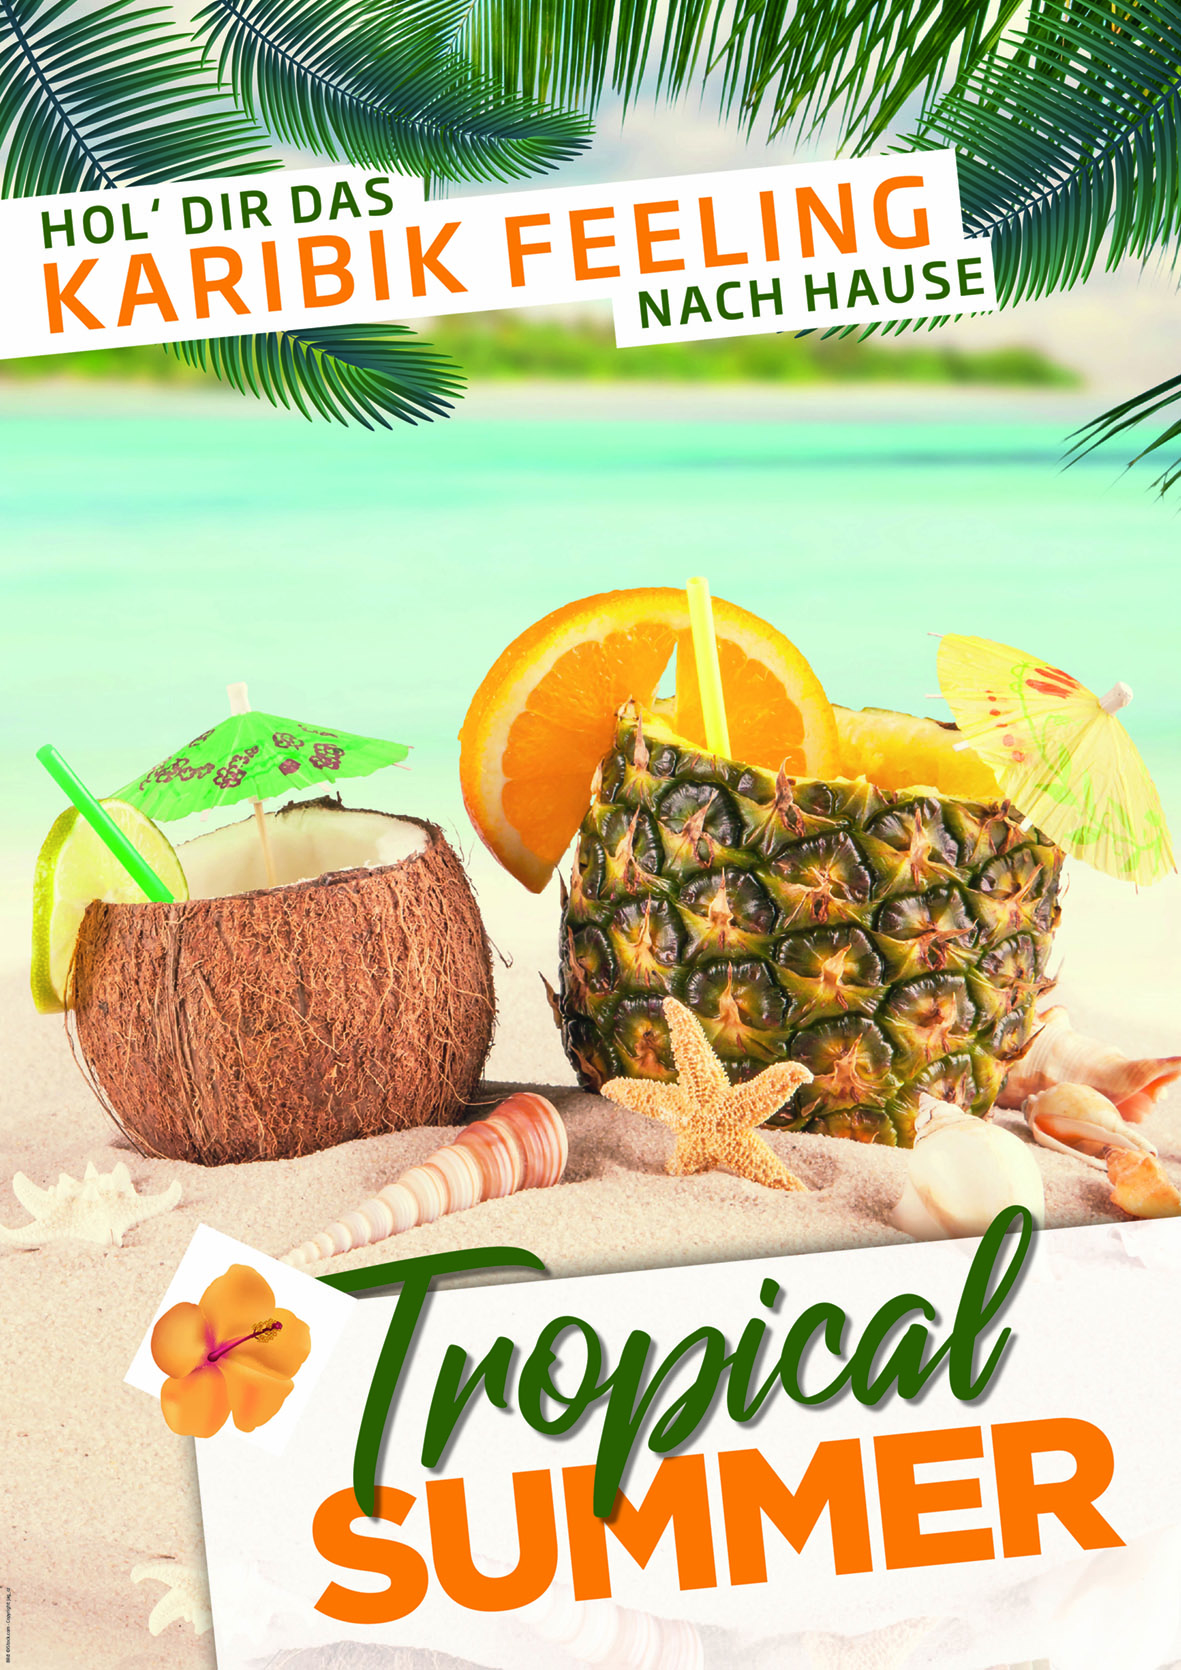 "<b>Themenplakat Juli 2018</b><br />""Tropical Summer"""